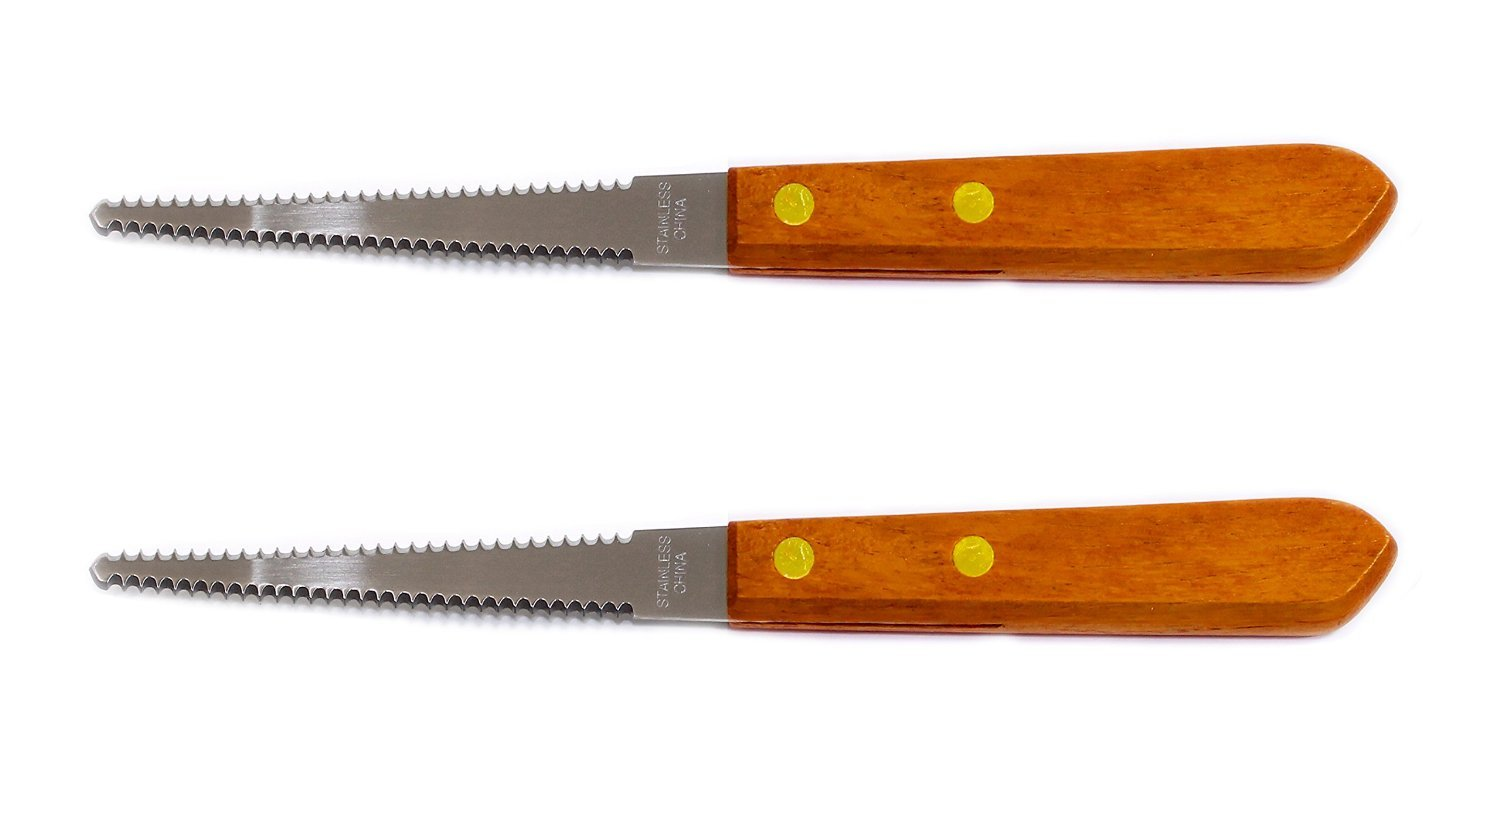 Set of 2 Grapefruit Knives, Stainless Steel Blade, Wood Handle, Serrated Blade Chef Craft Corporation 4335493395